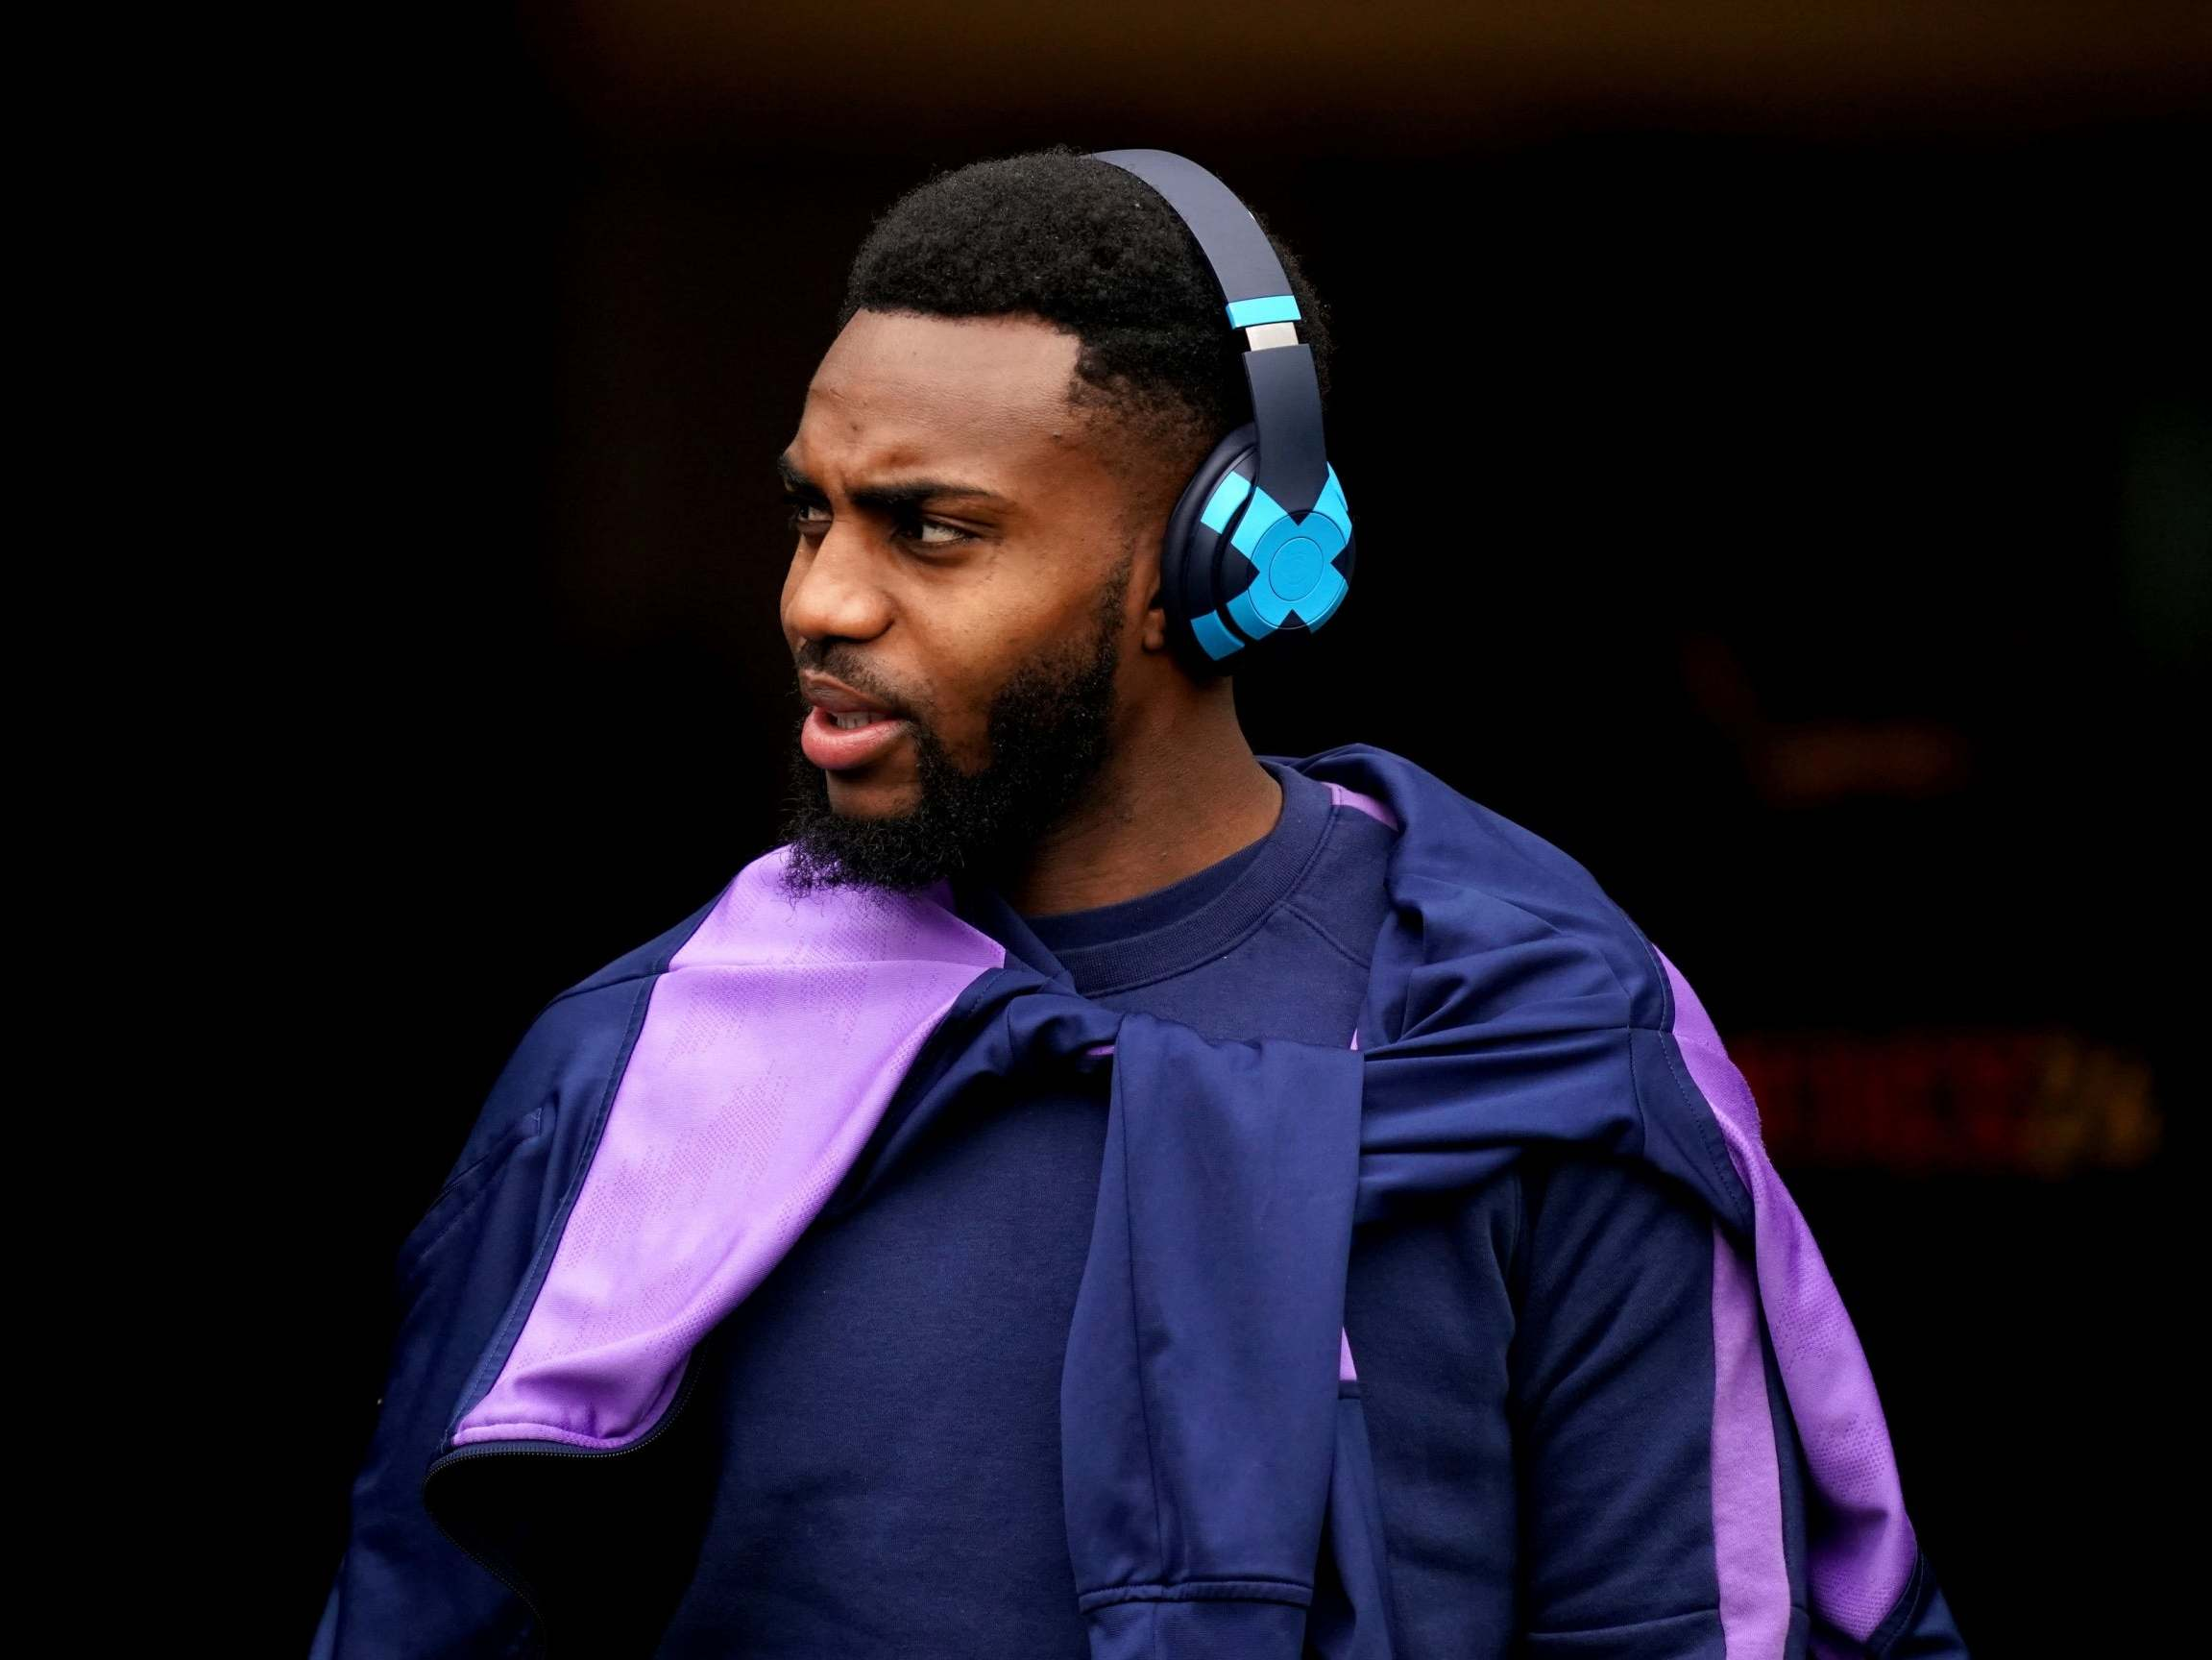 Tottenham: Danny Rose insists he does not need to discuss transfer future and will run down his contract